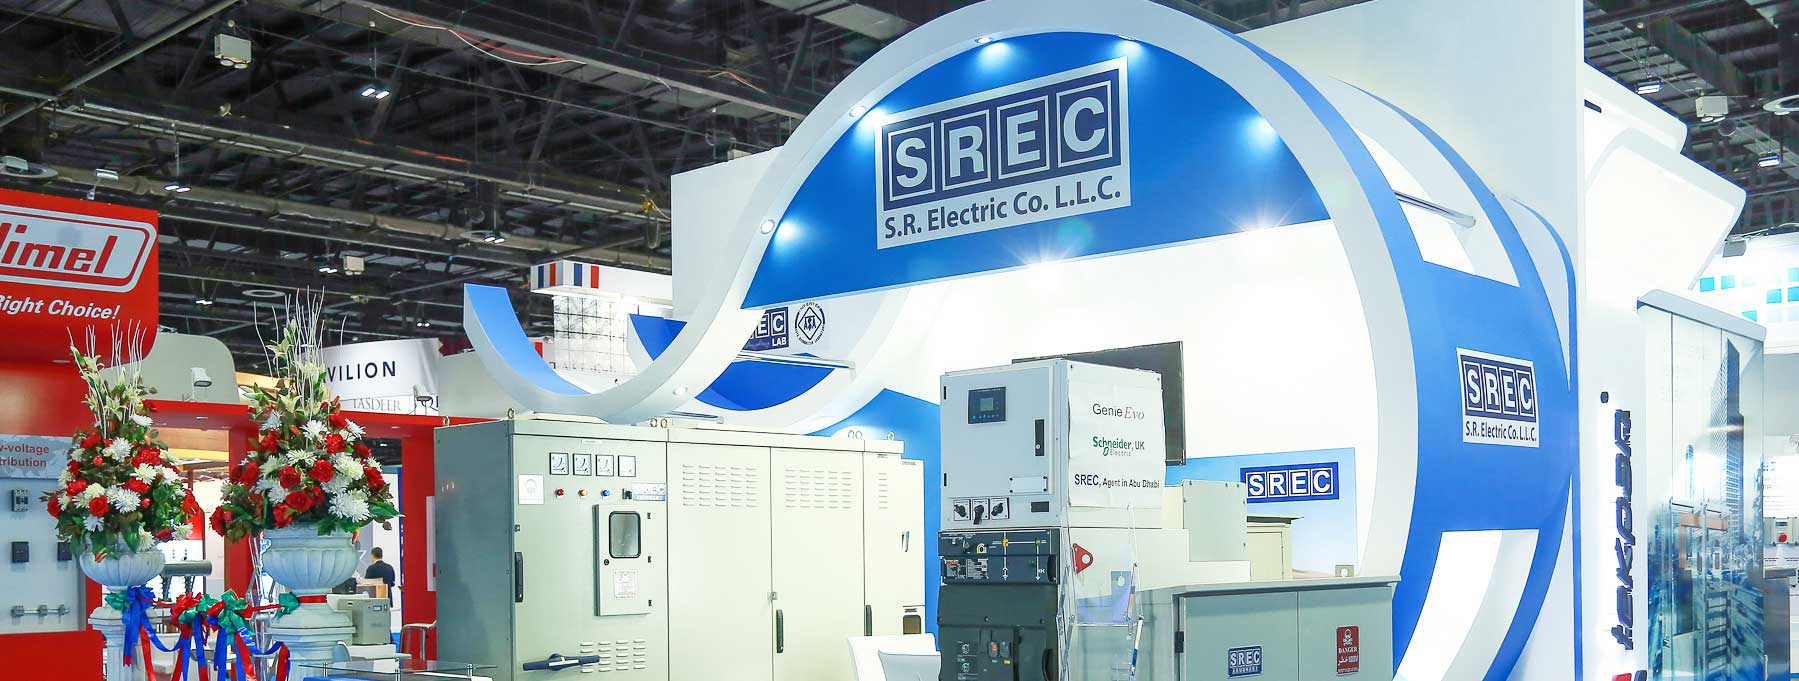 S R  Electric Co  L L C AbuDhabi | Leading Manufacturer